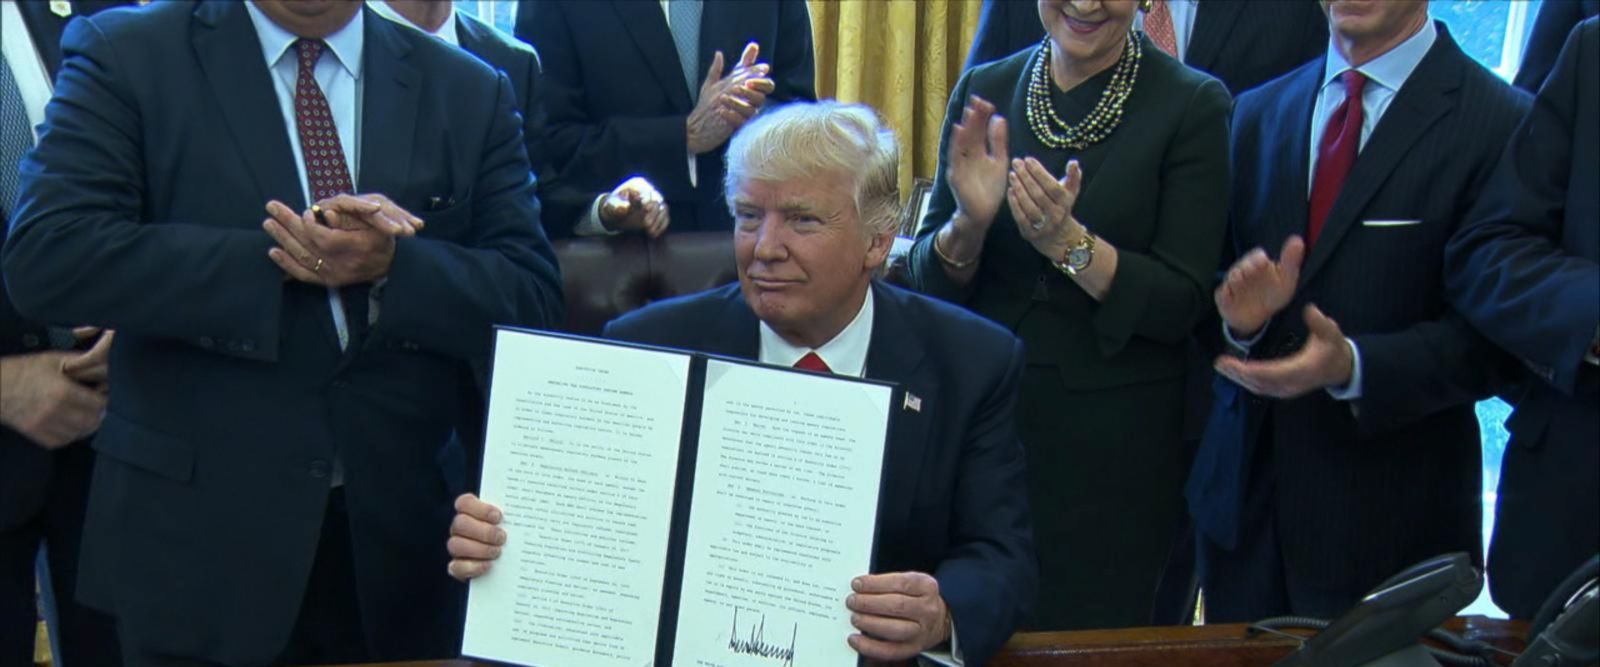 The president directed government agencies to create task forces to look into ways to eliminate or scale back regulations.